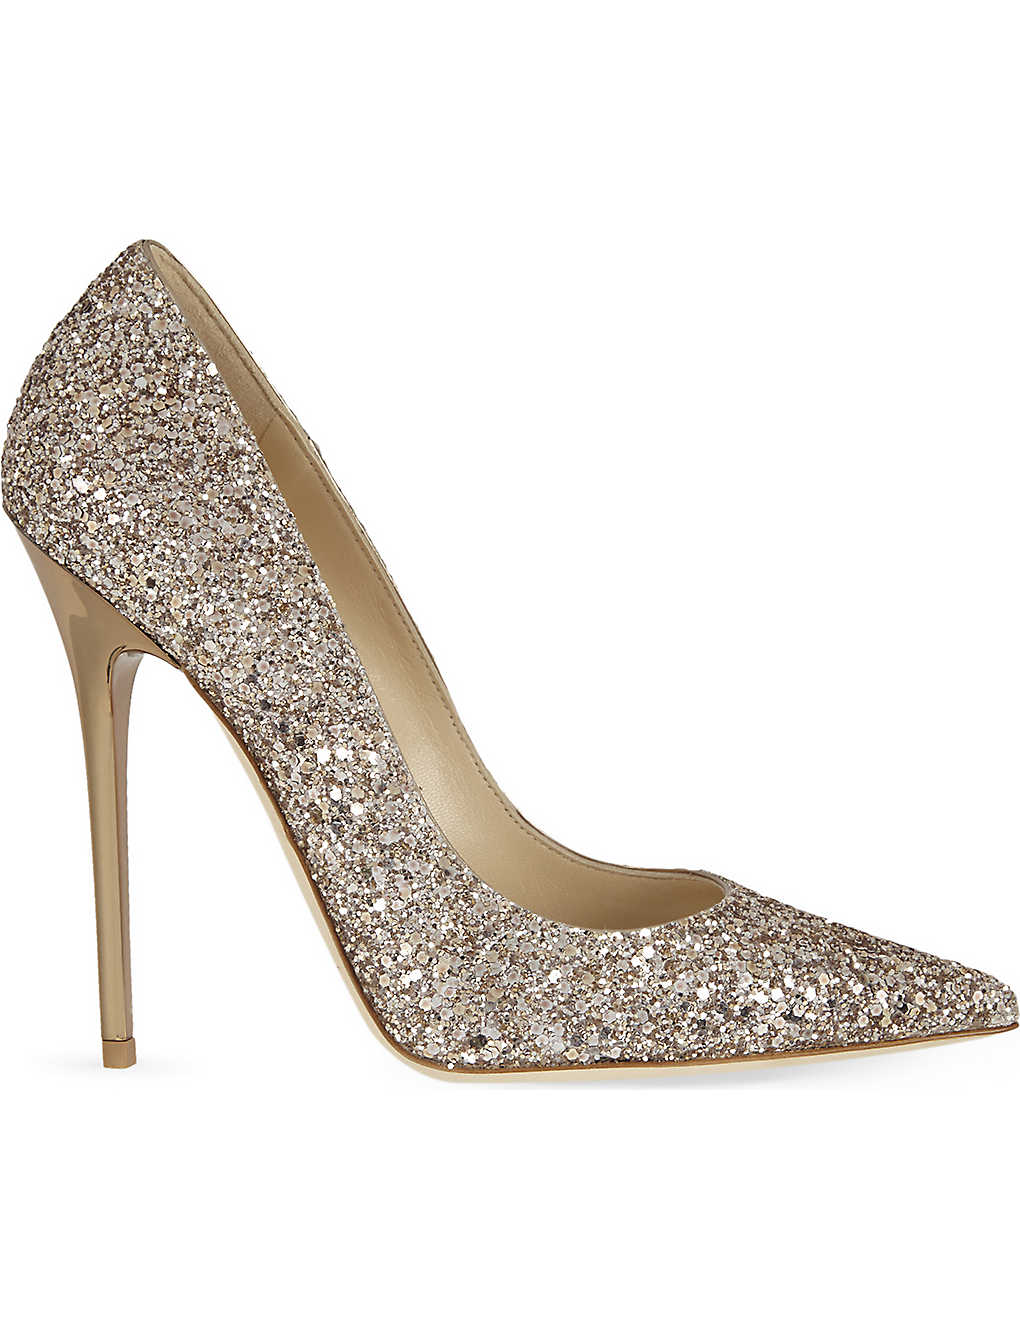 Jimmy Choo Anouk 120 Glitter Heeled Courts Fashion Shoes Gliter Heels No Recent Searches